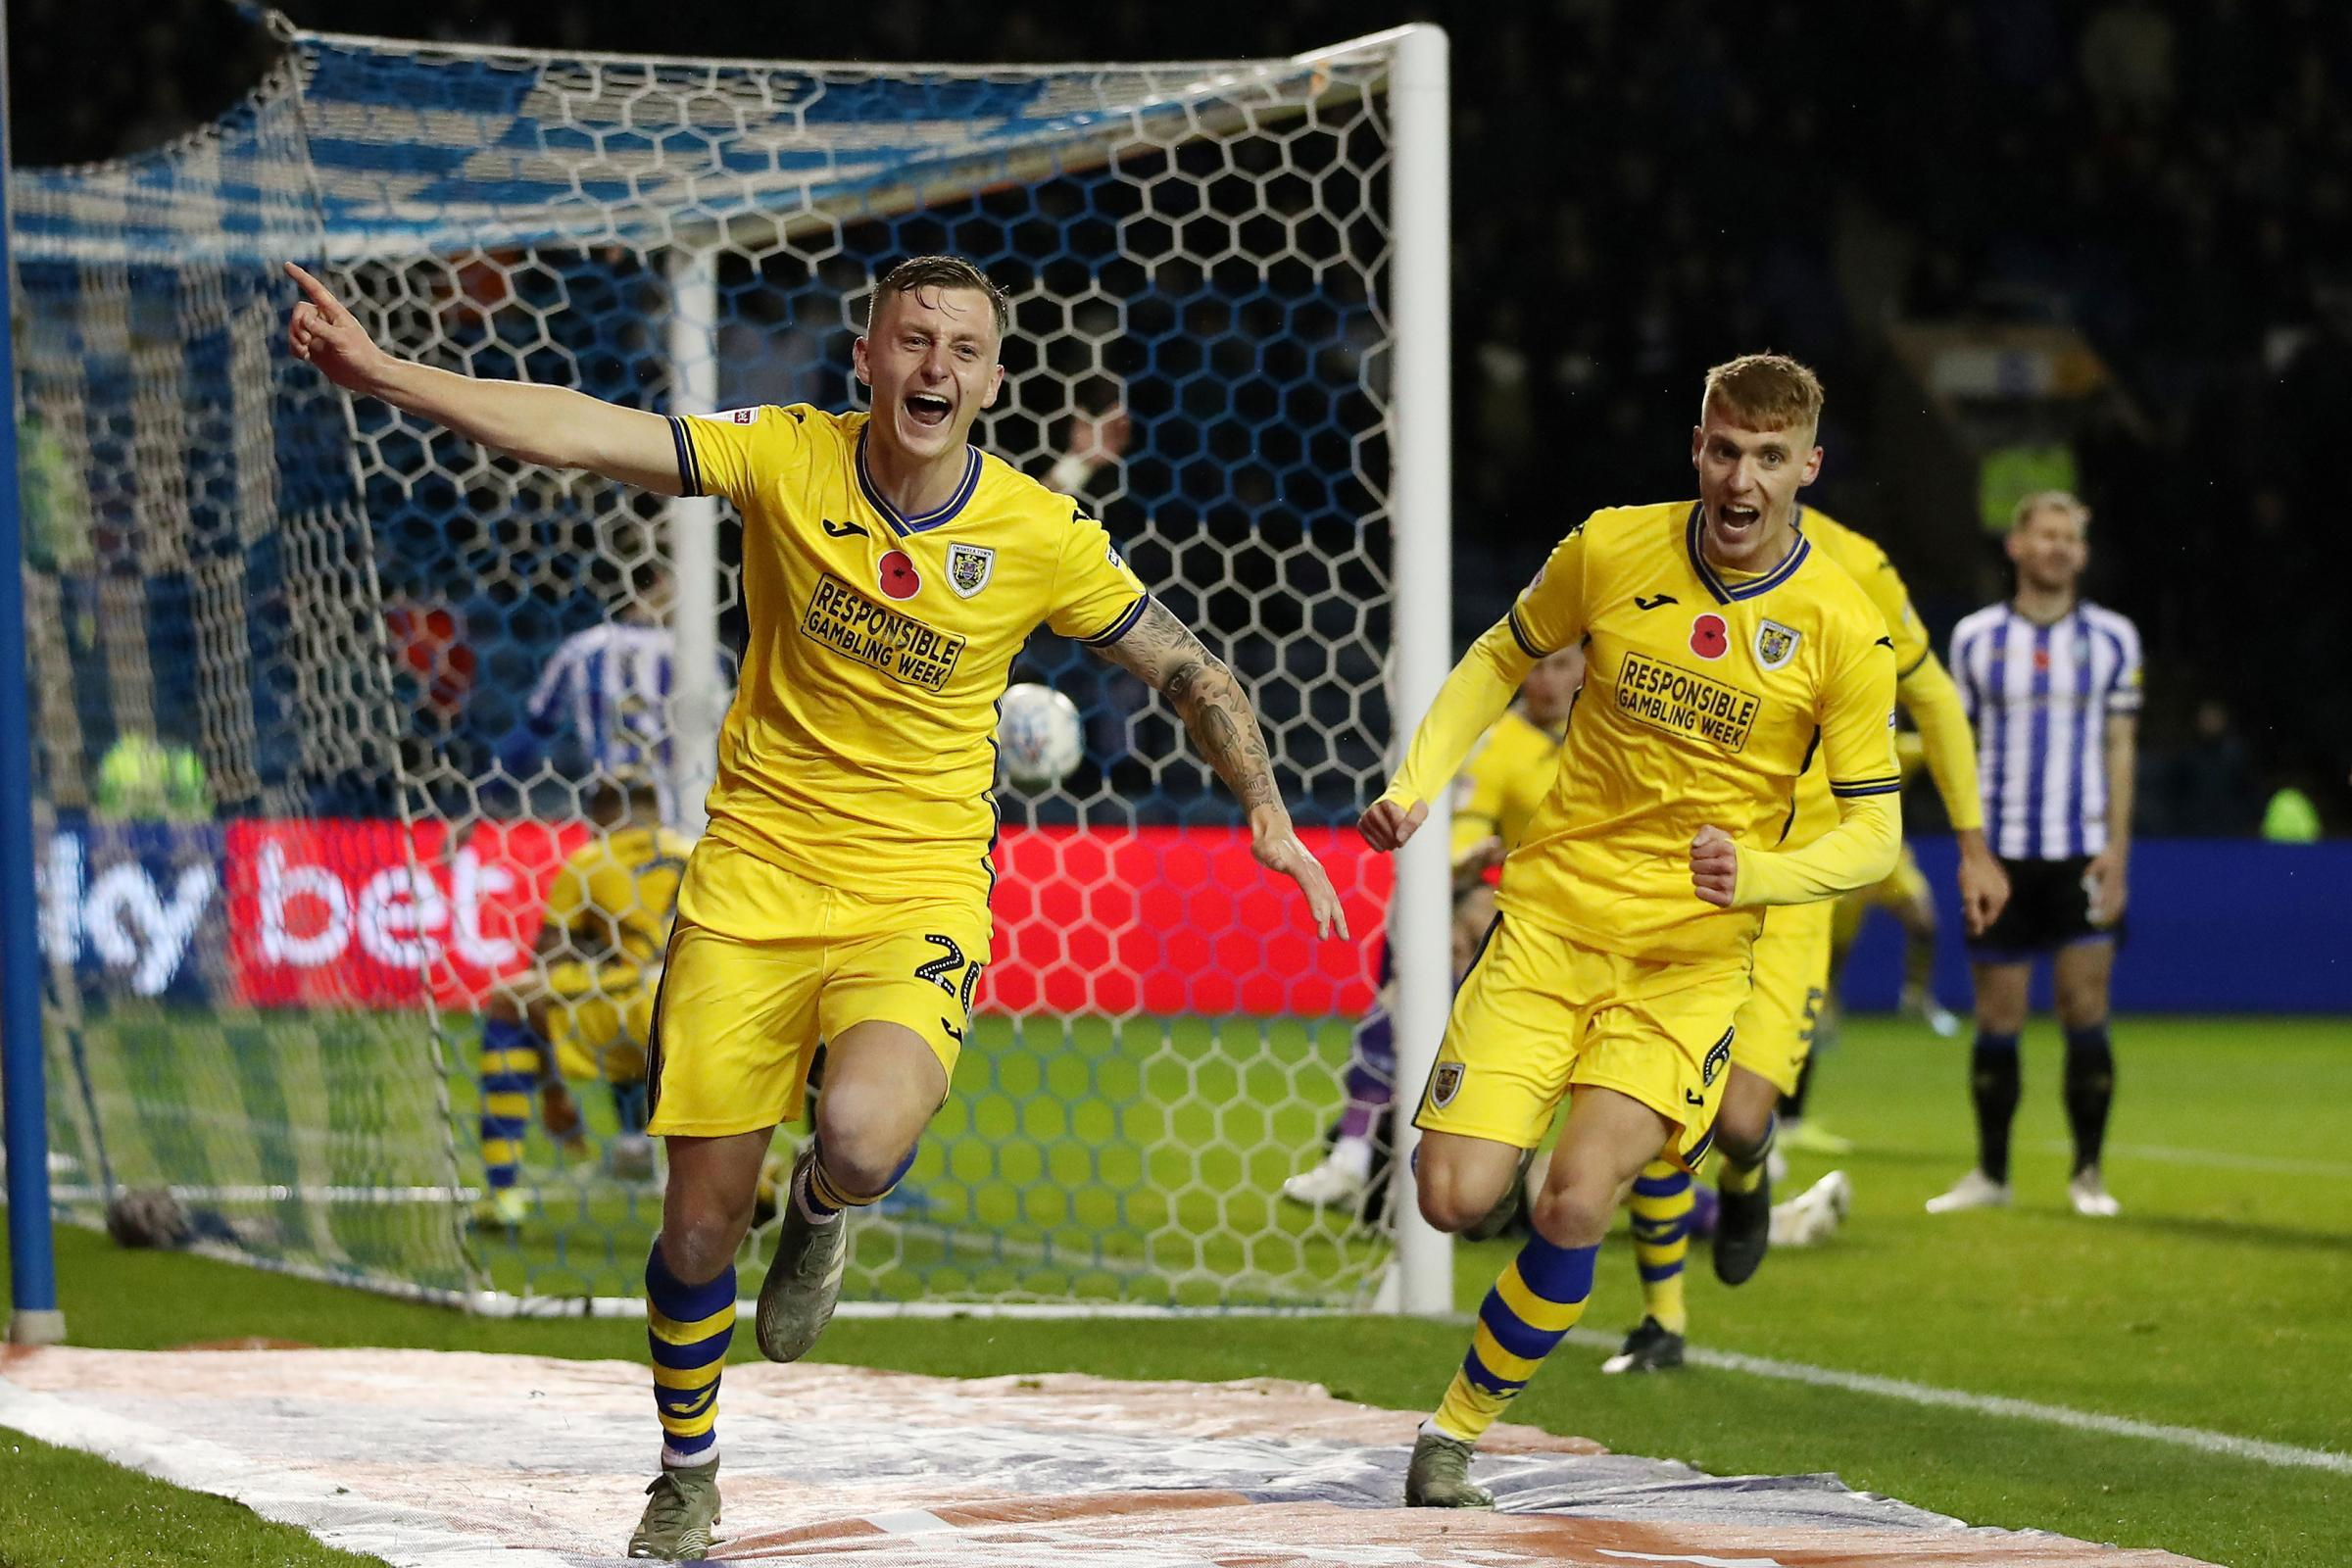 Watford's out-on-loan defender Ben Wilmot scored an equaliser for Swansea City at Sheffield Wednesday